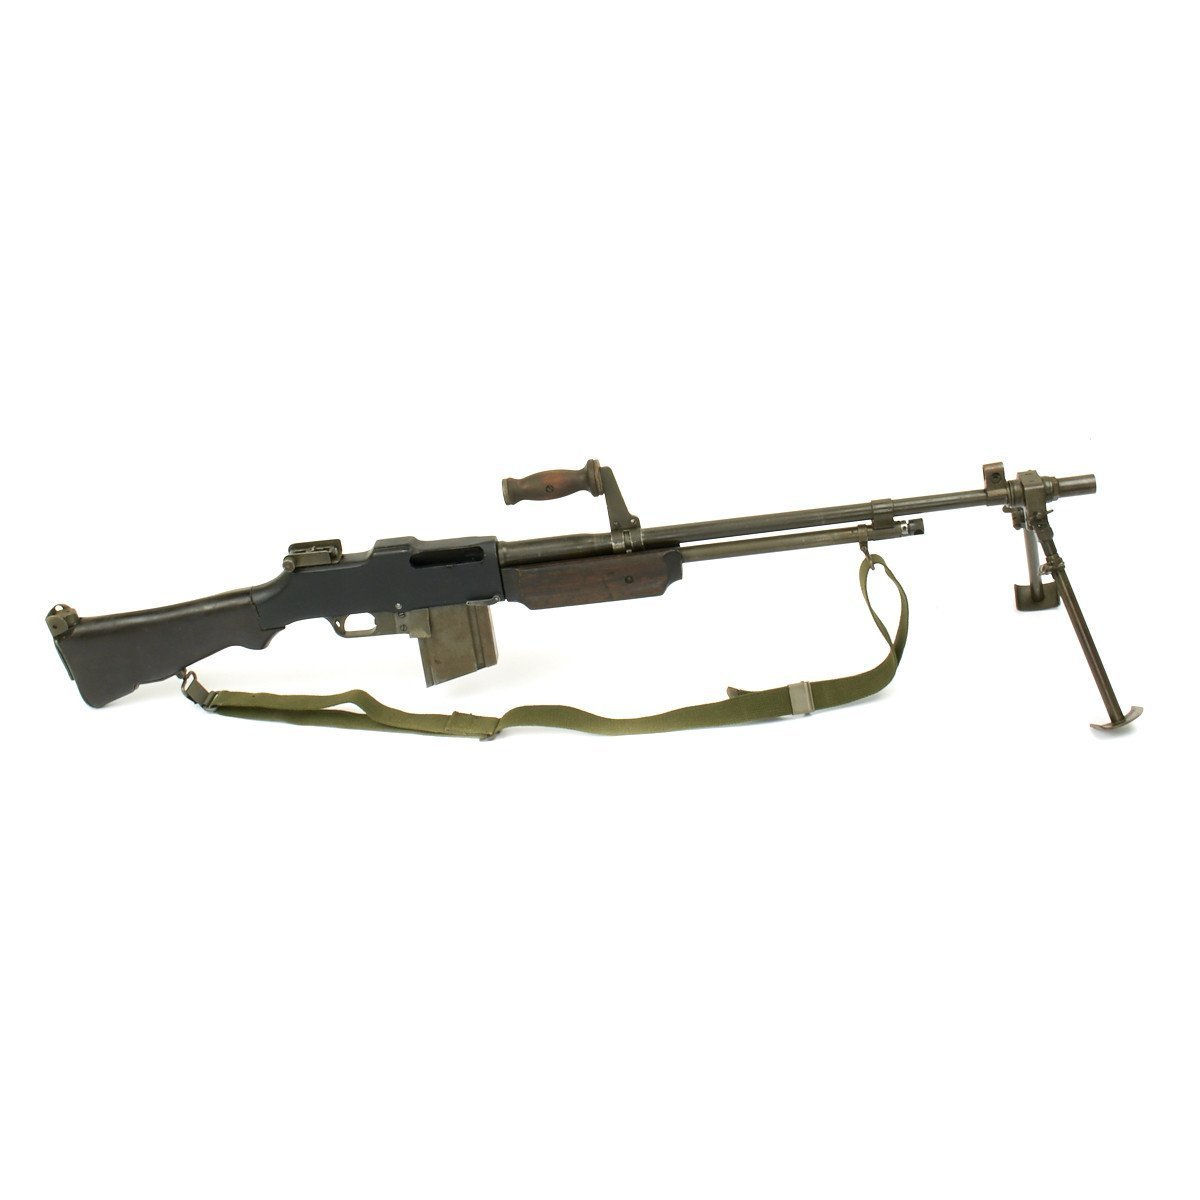 Original Display Machine Guns